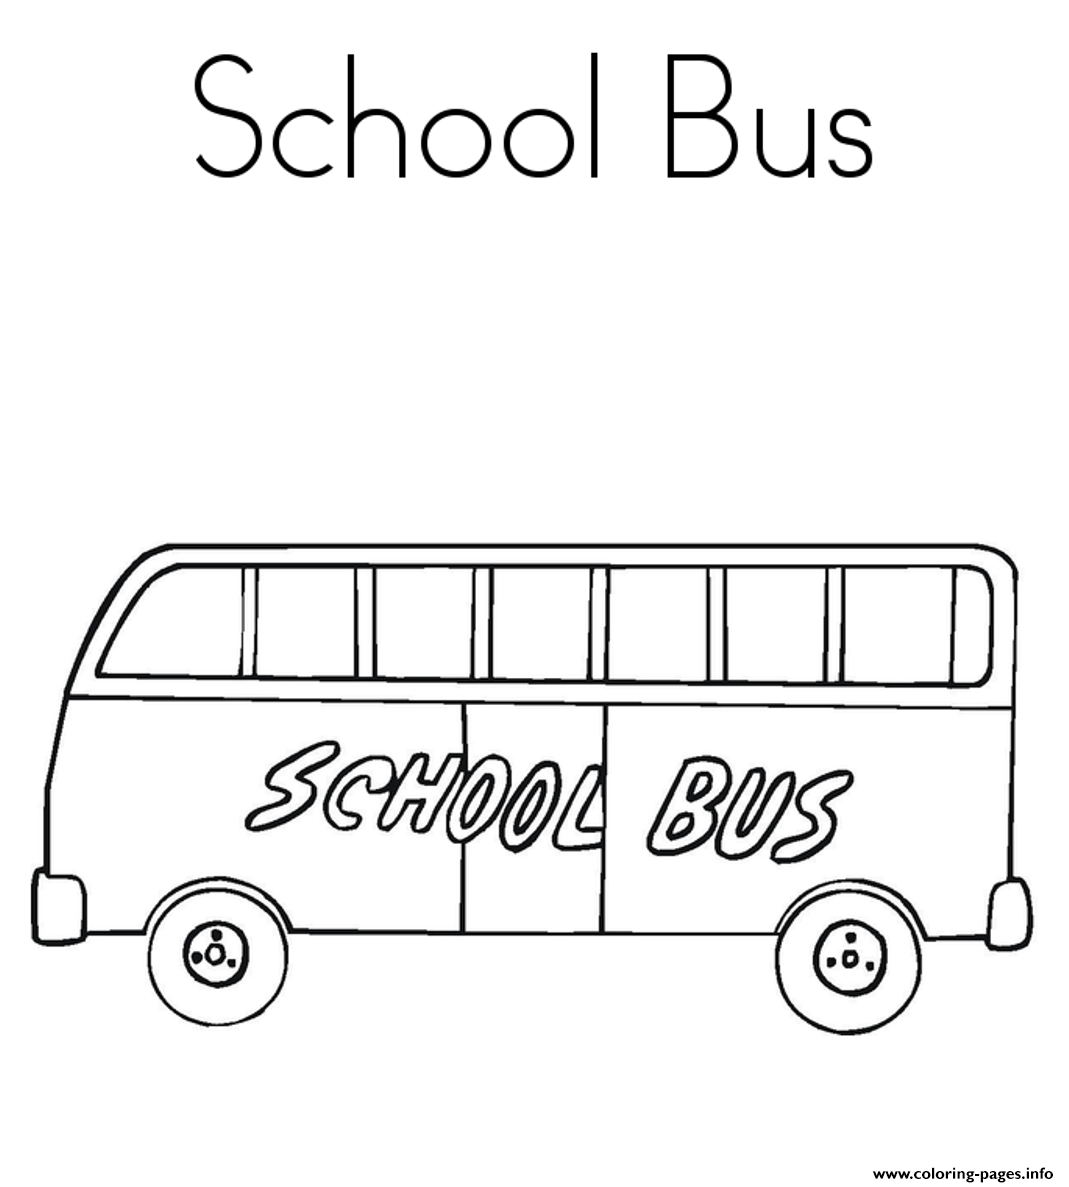 School Bus Free Coloring Pages Printable